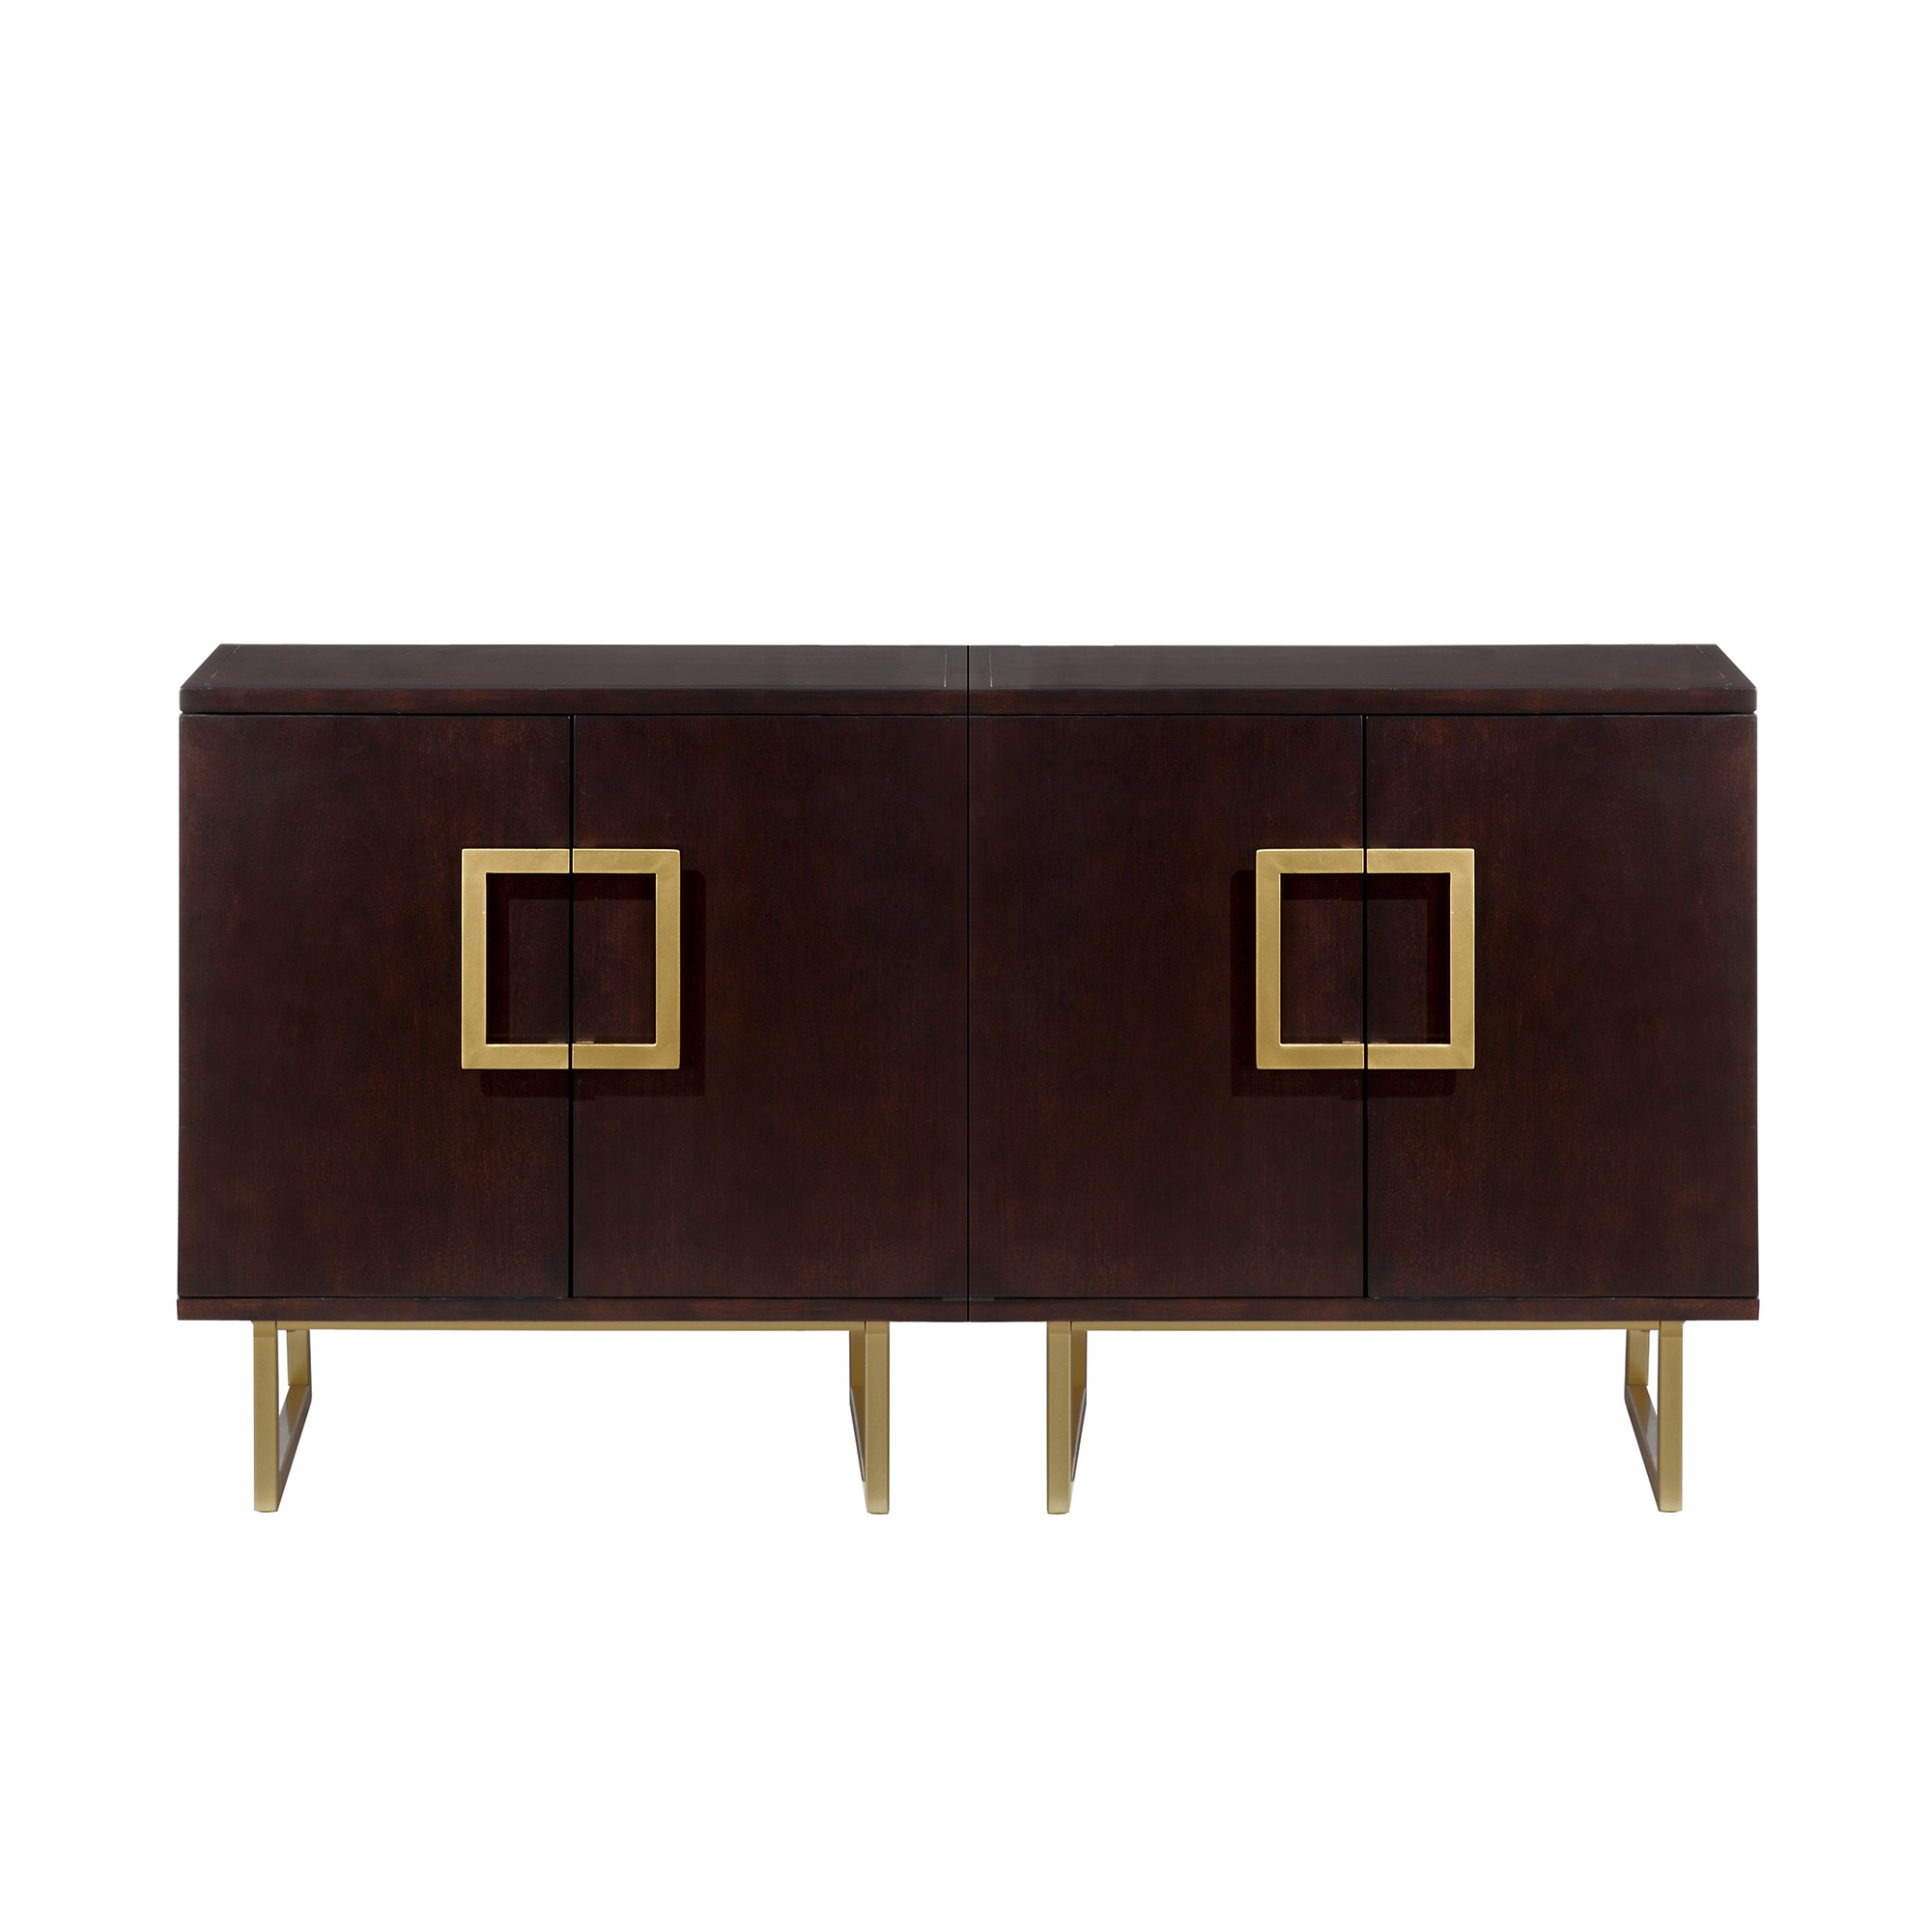 madison park kenzie gold chest free shipping today brown accent table nautical hanging lights dark coffee half moon console antique telephone target mission kitchen furniture